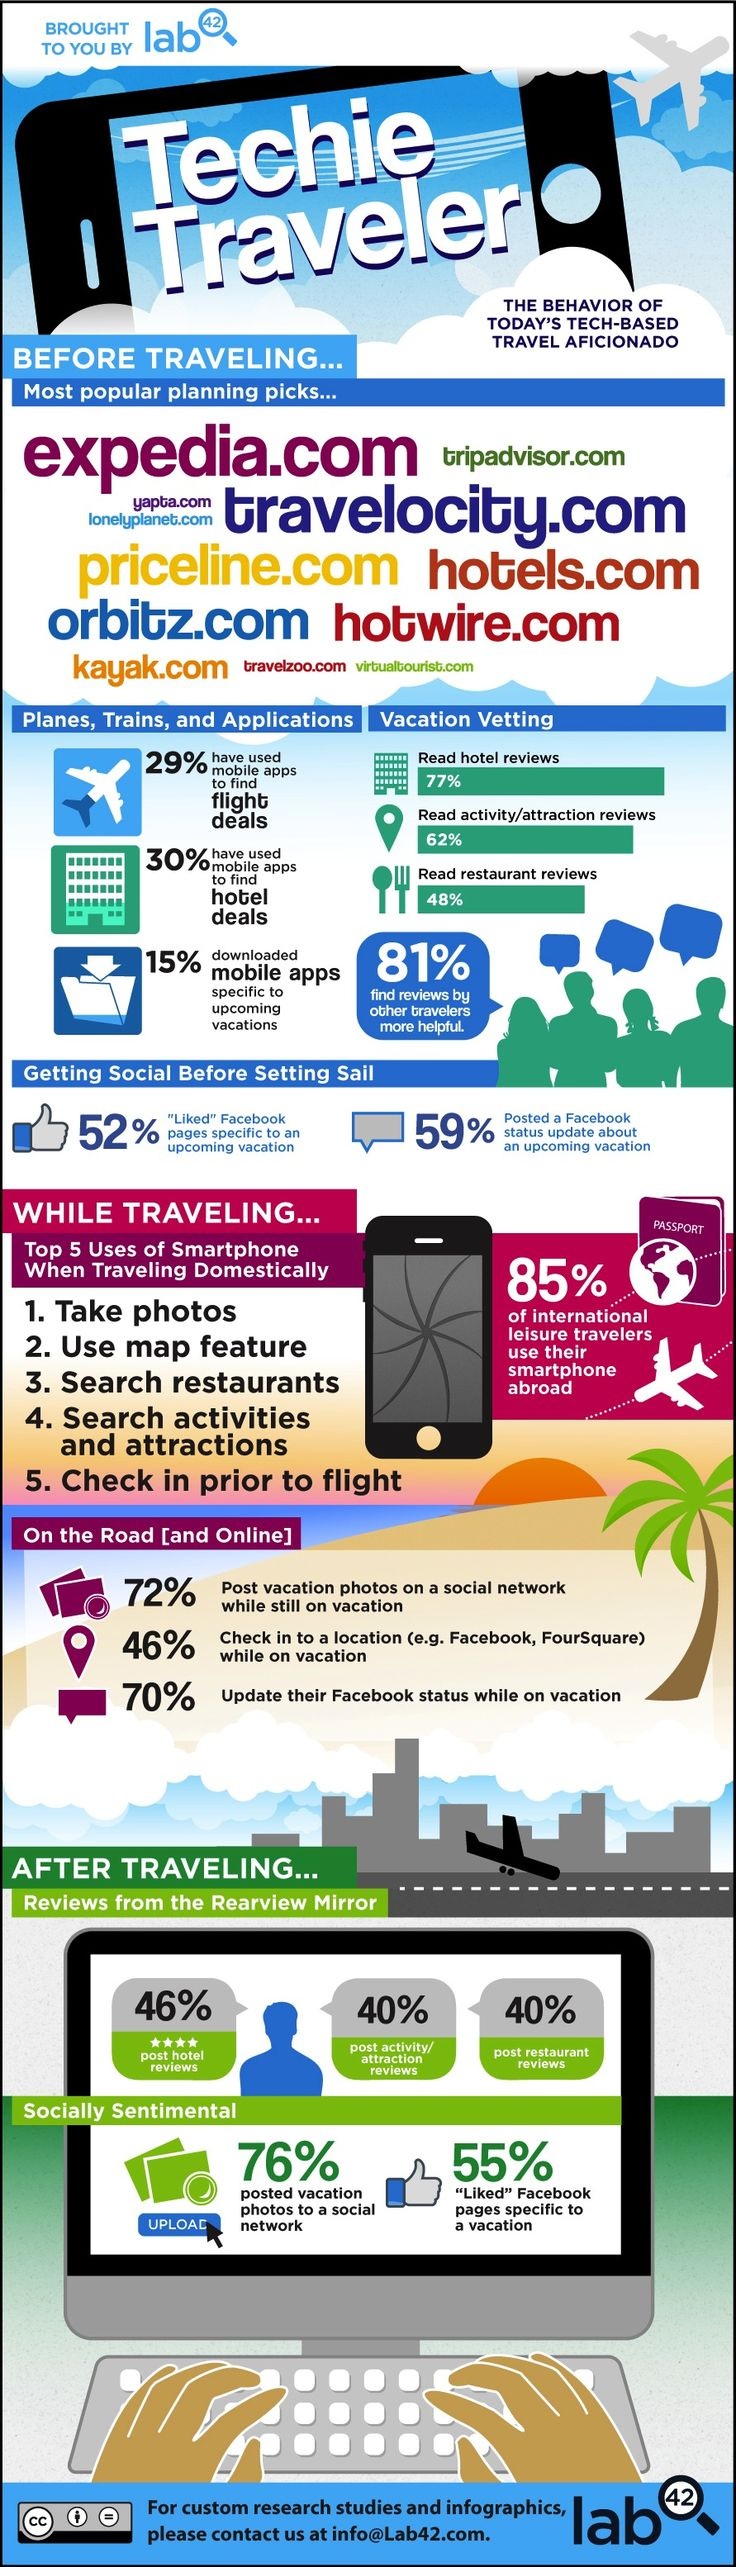 How Tech and Social Media Are Changing Travel [INFOGRAPHIC]  From mobile apps to deal sites, people use technology more than ever to help find places to go. Technology also helps vacationers enjoy themselves after they reach their destinations. But just how much is technology changing the way we travel?